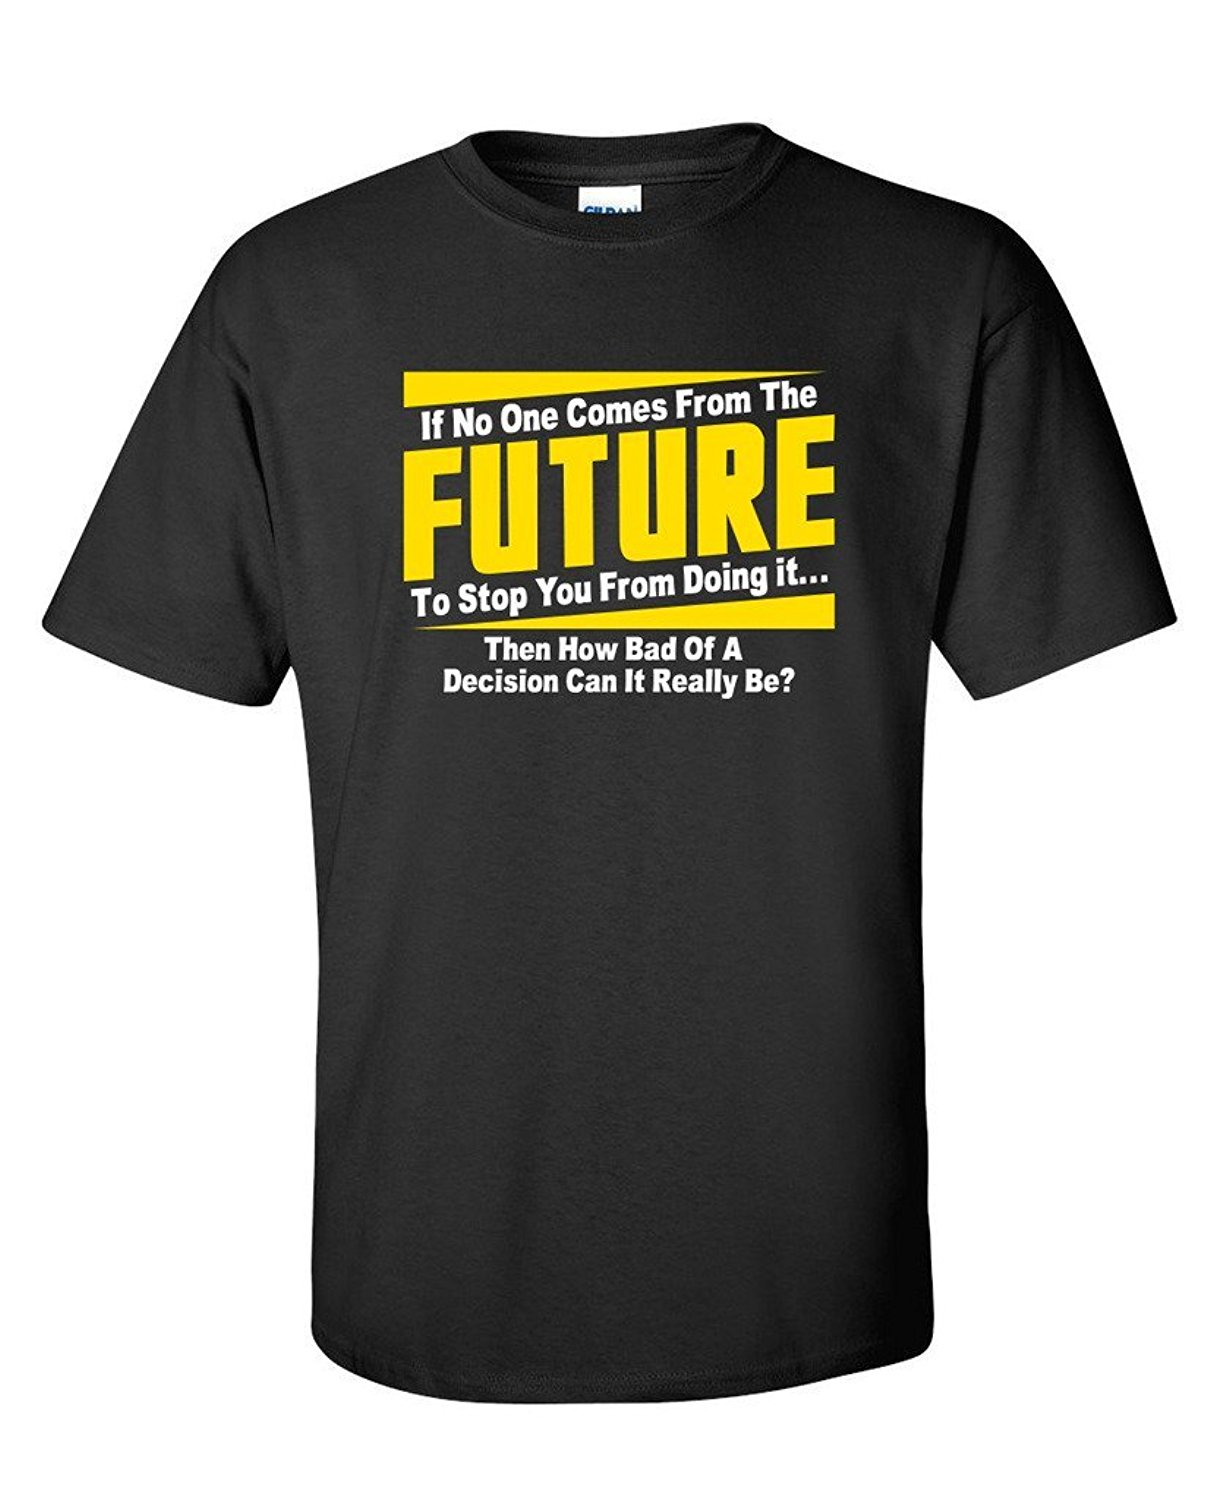 2017 Newest Mens Funny Fashion If No One <font><b>Comes</b></font> <font><b>From</b></font> <font><b>Future</b></font> Sarcastic Mens Cool Humor Funny Novelty T-Shirt Summer 100% Cotton